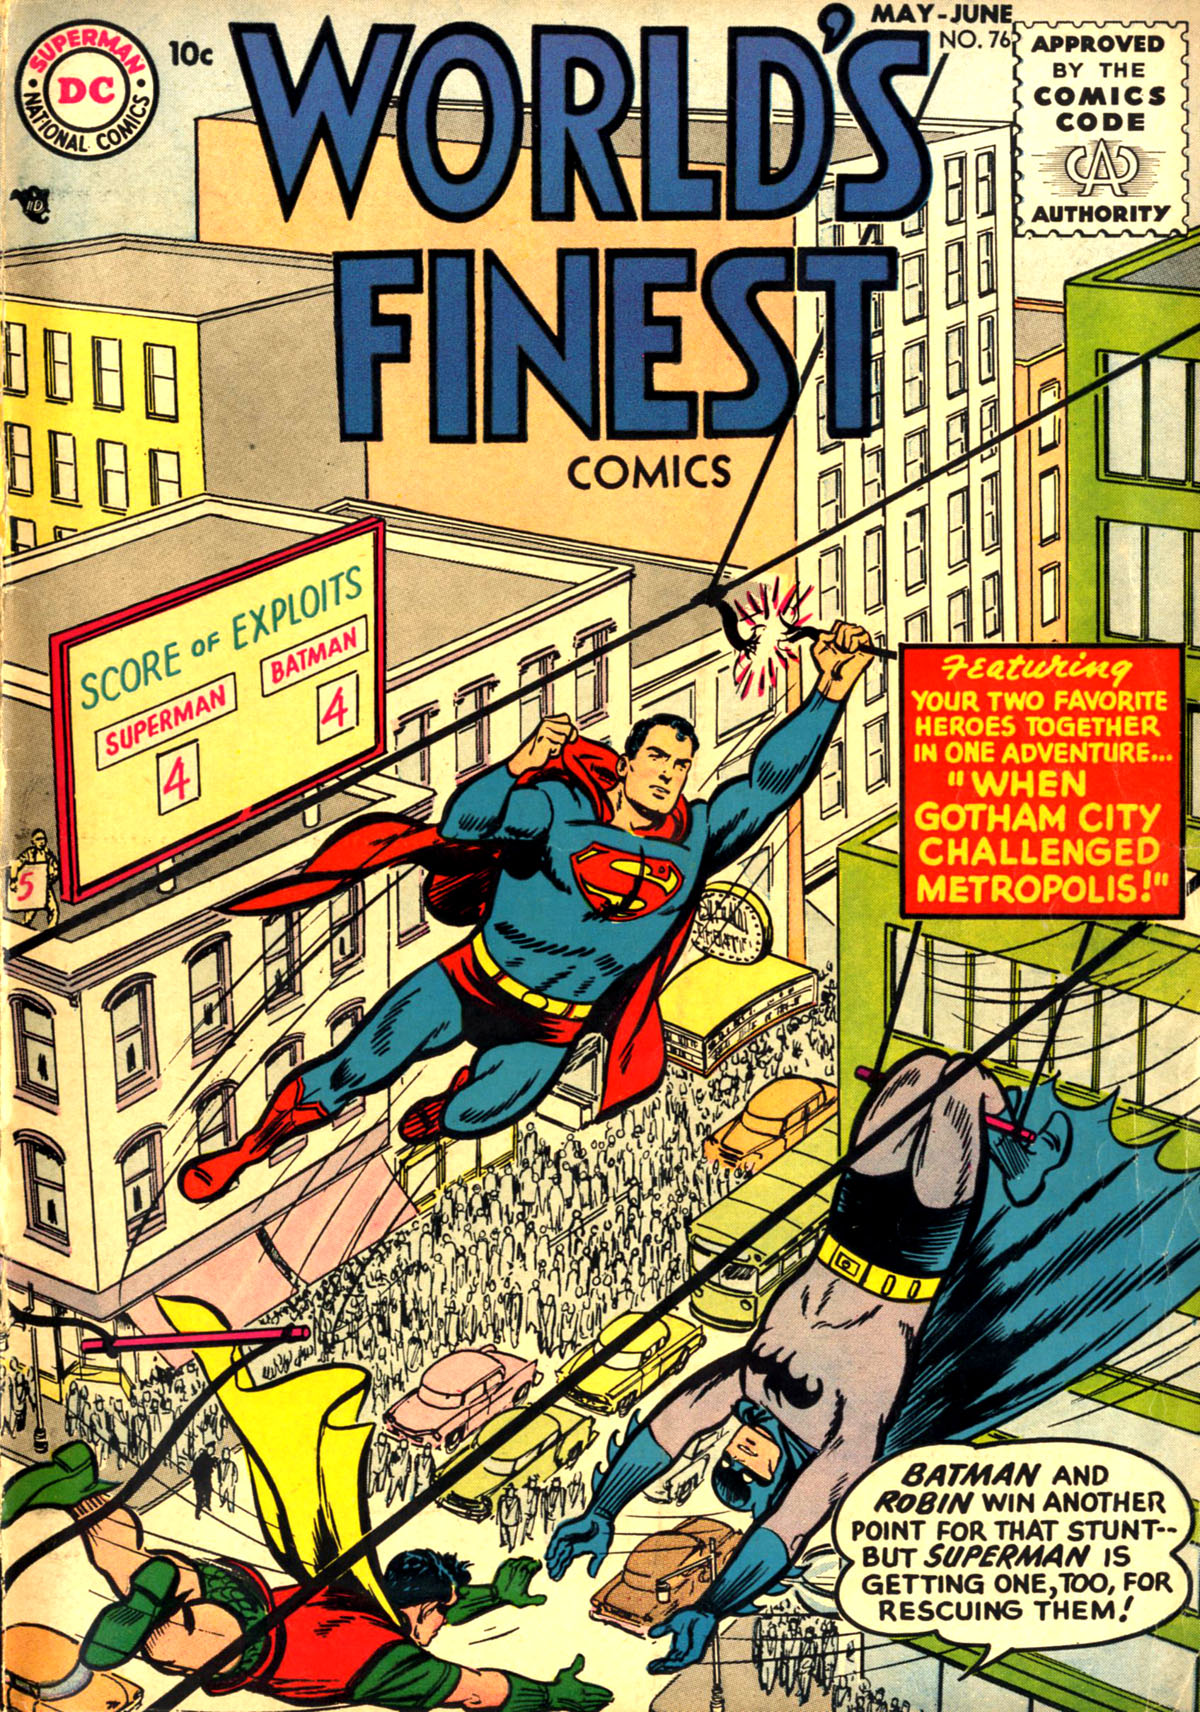 World's Finest Comics #76